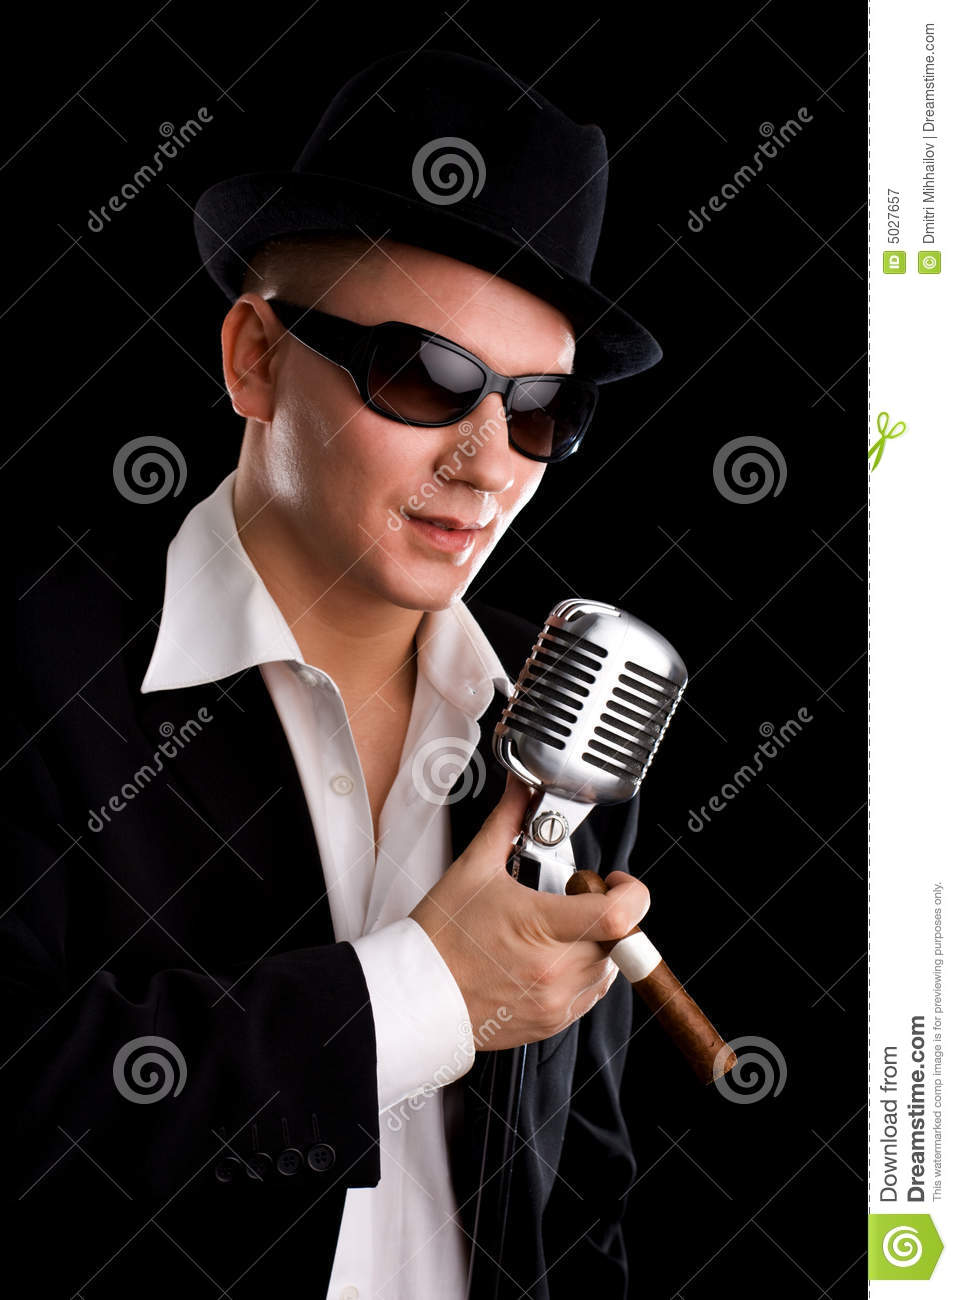 Singer With Old Fashioned Mic Royalty Free Stock